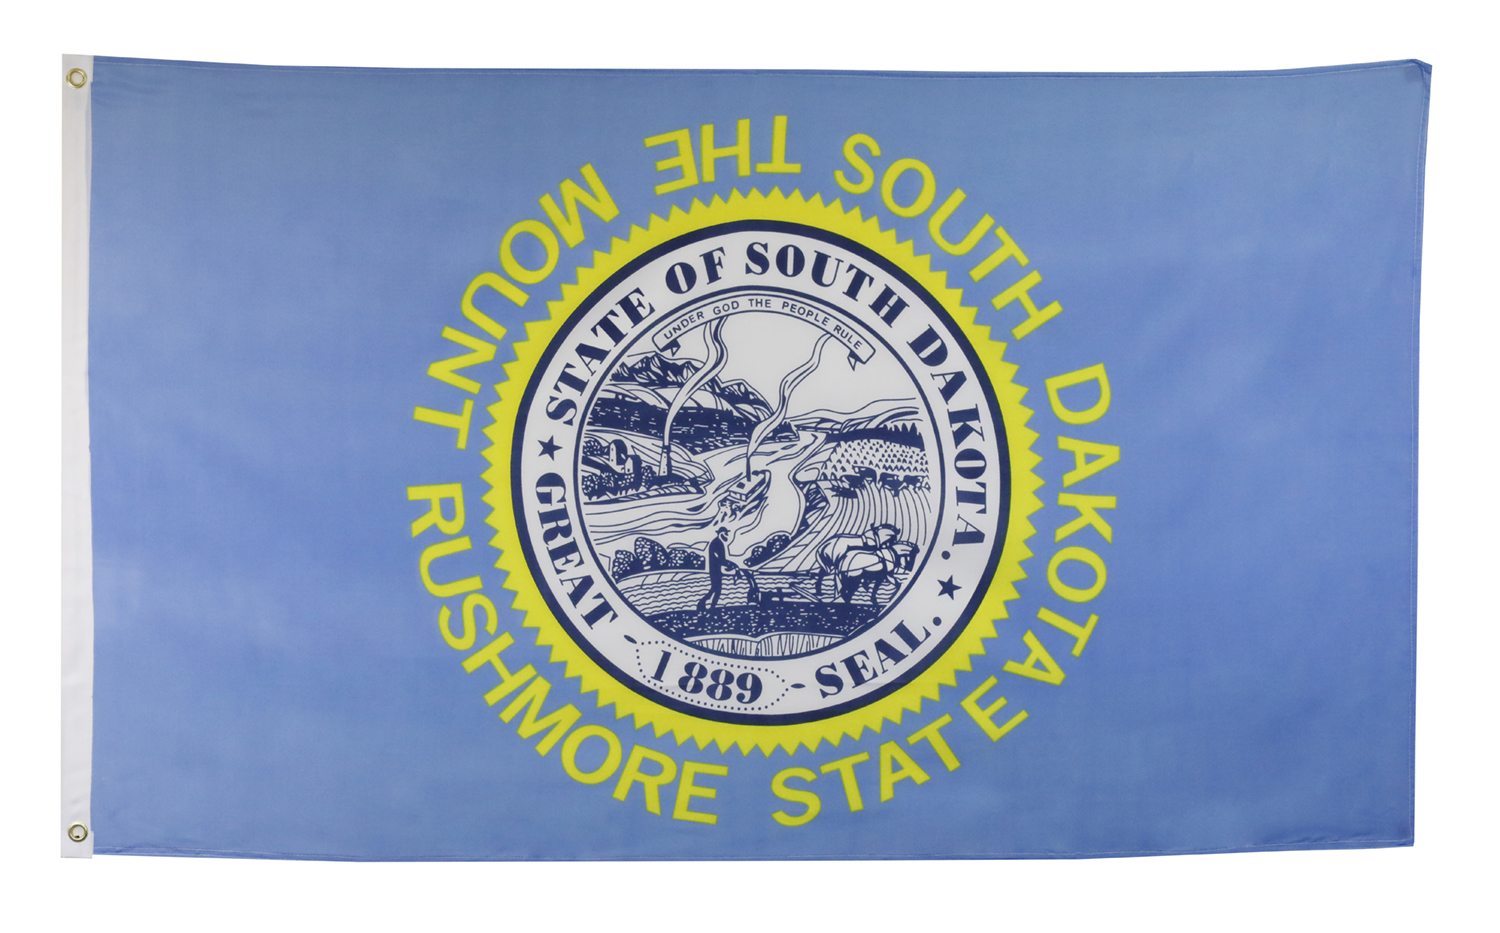 Shop72 US South Dakota State Flags - South Dakota Flag - 3x5' Flag from Sturdy 100D Polyester - Canvas Header Brass Grommets Double Stitched from Wind